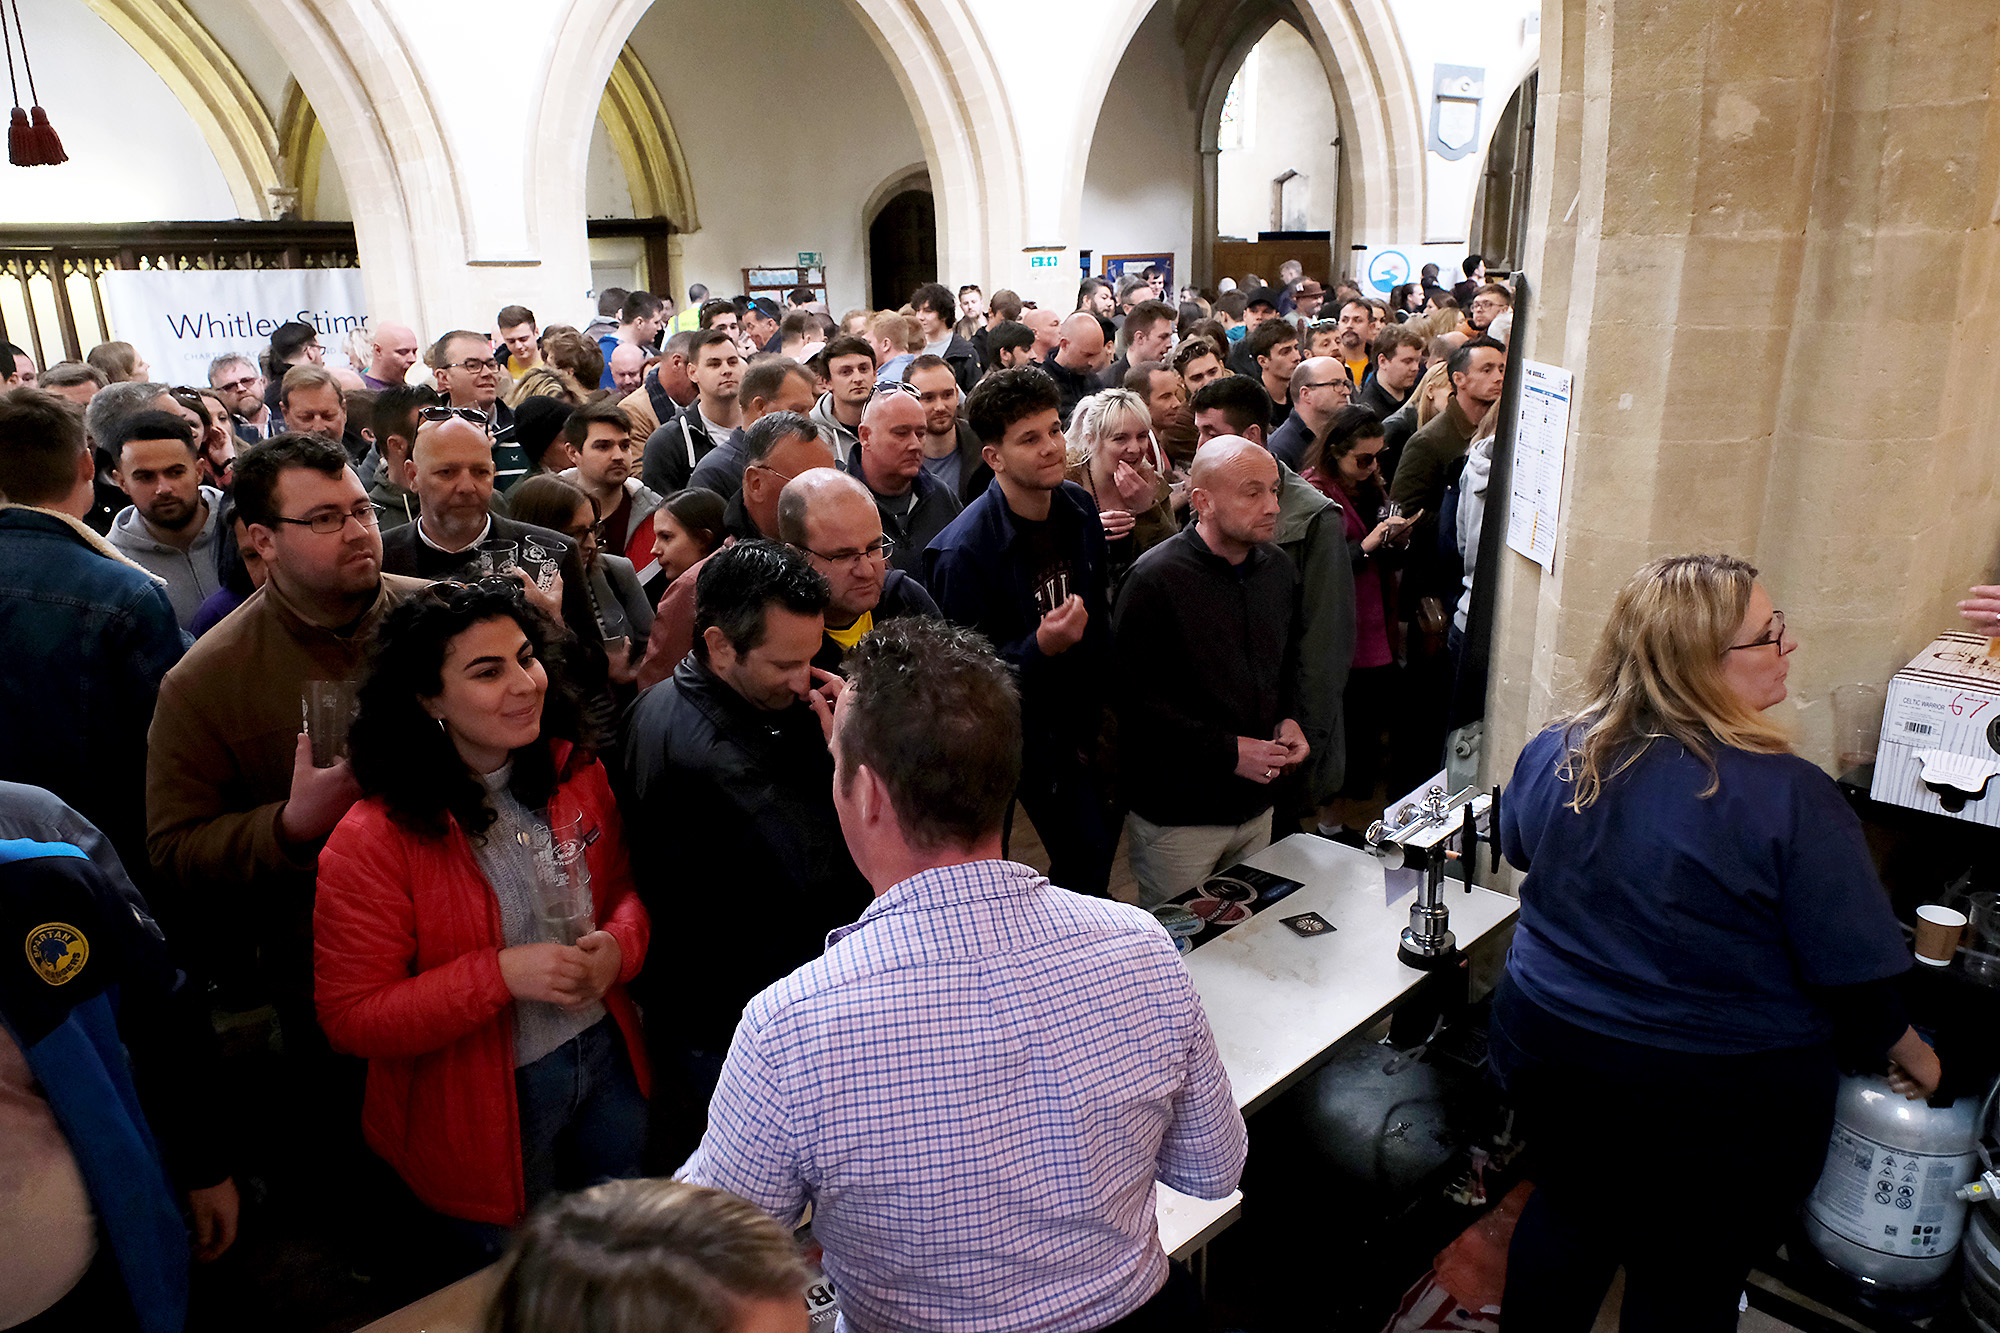 The queues to be served were very large but very cheerful at the Witney Beer Festival.